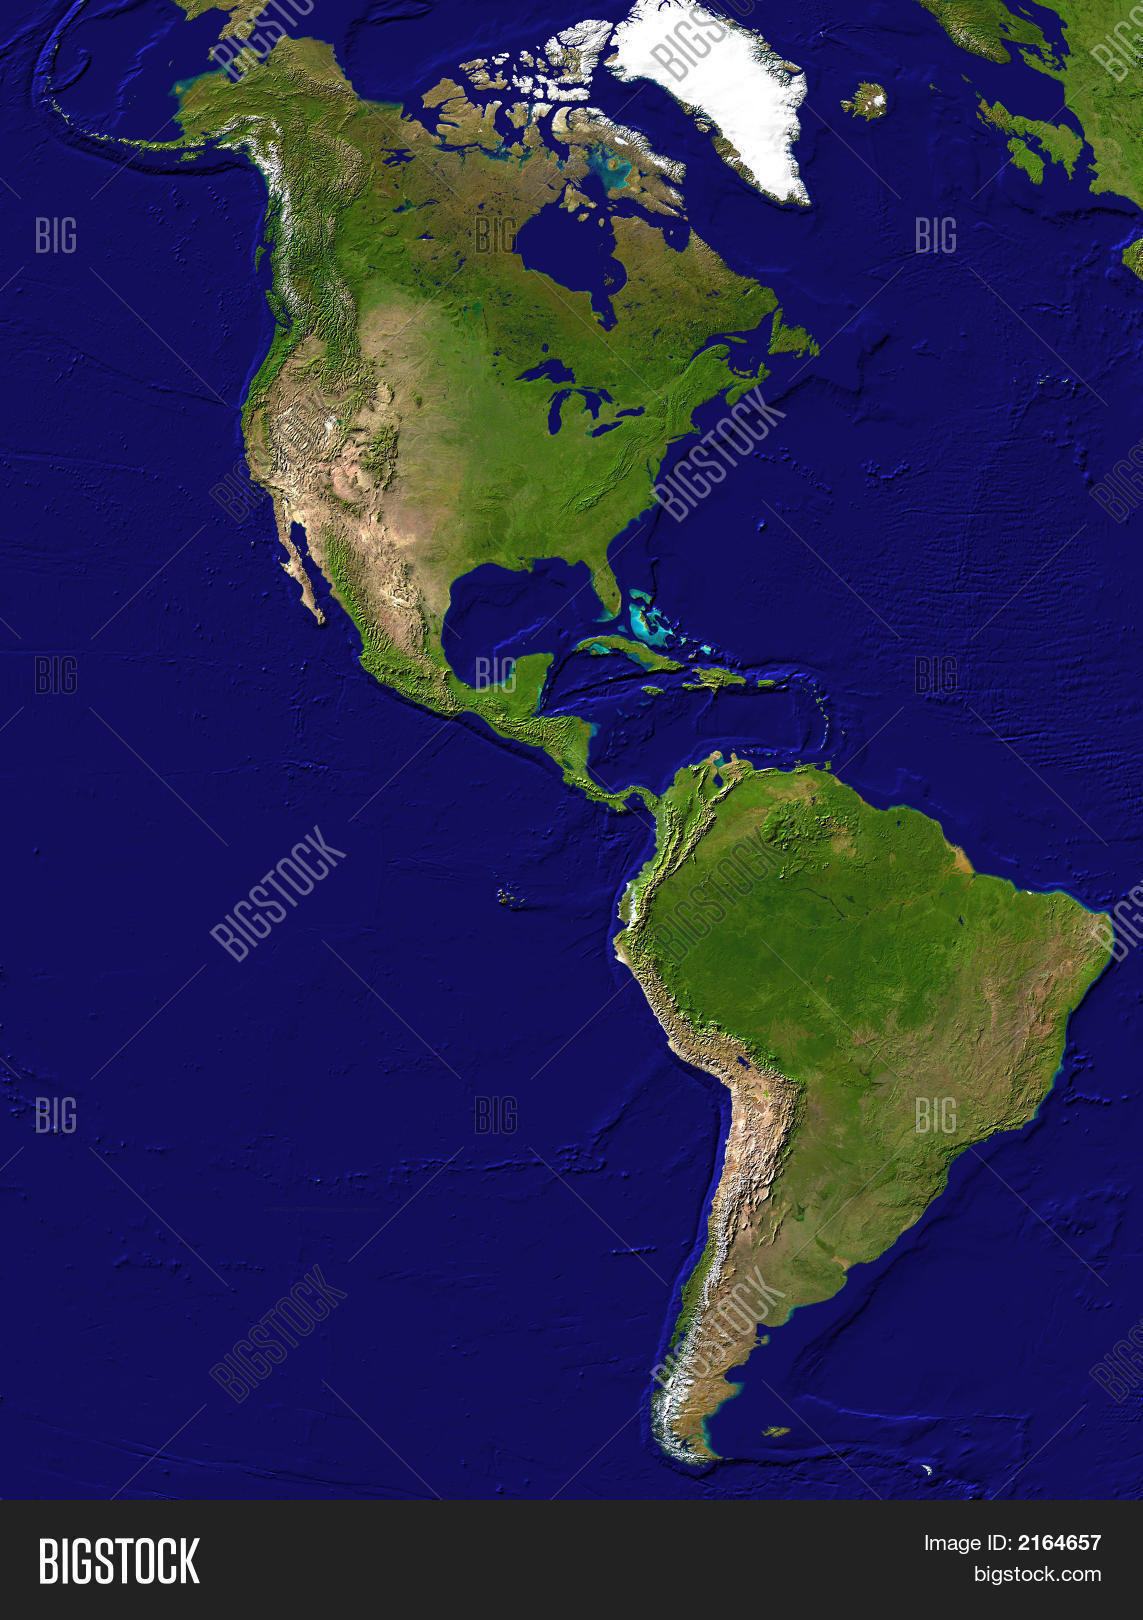 Map American Continent Image & Photo | Bigstock